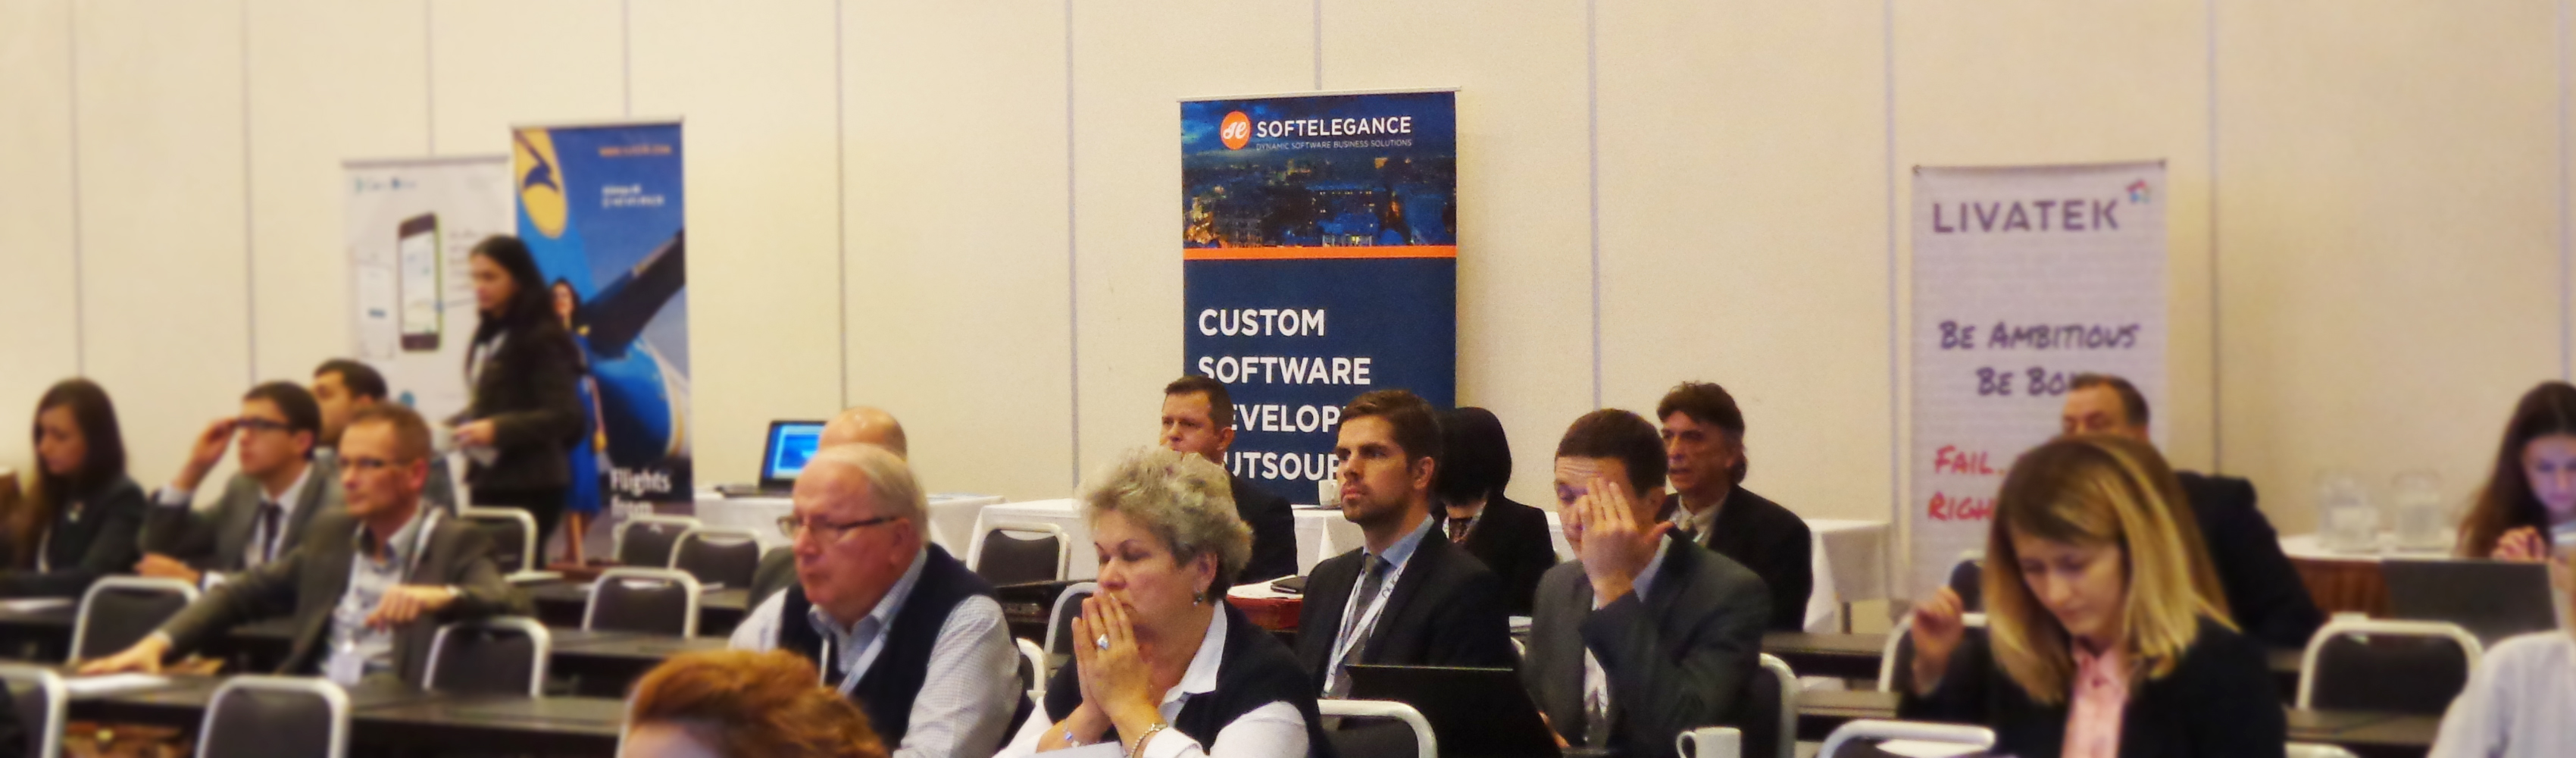 SoftElegance at Norwegian-Ukrainian ICT Conference